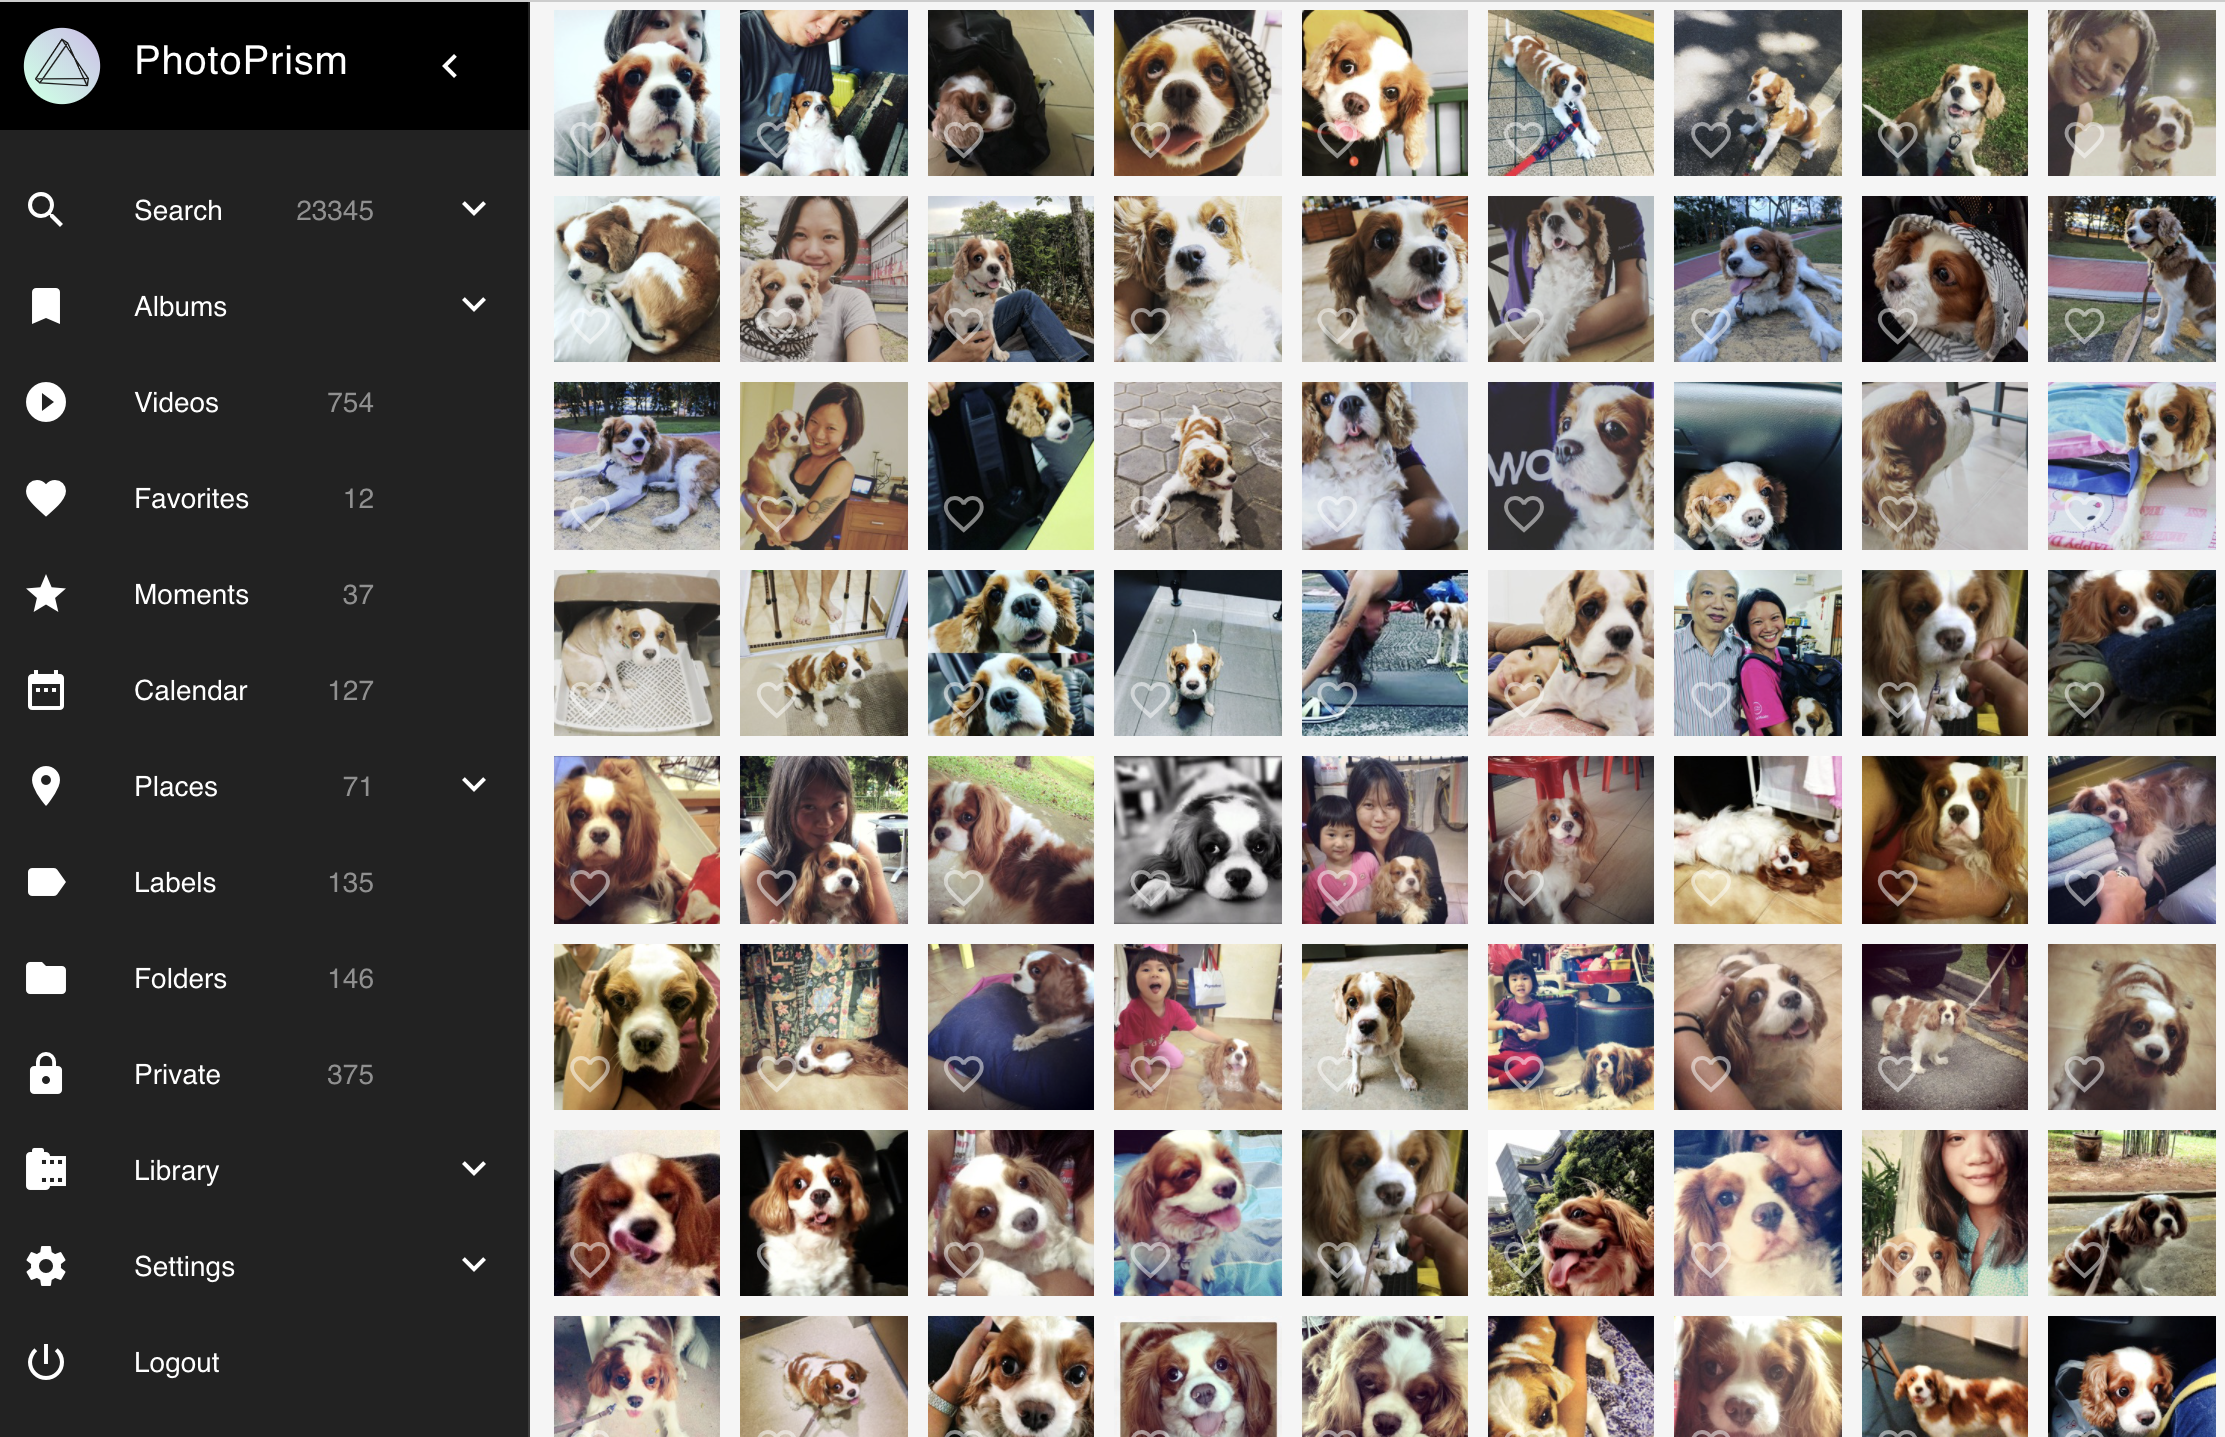 Screenshot of PhotoPrism showing lots of dogs in the pictures